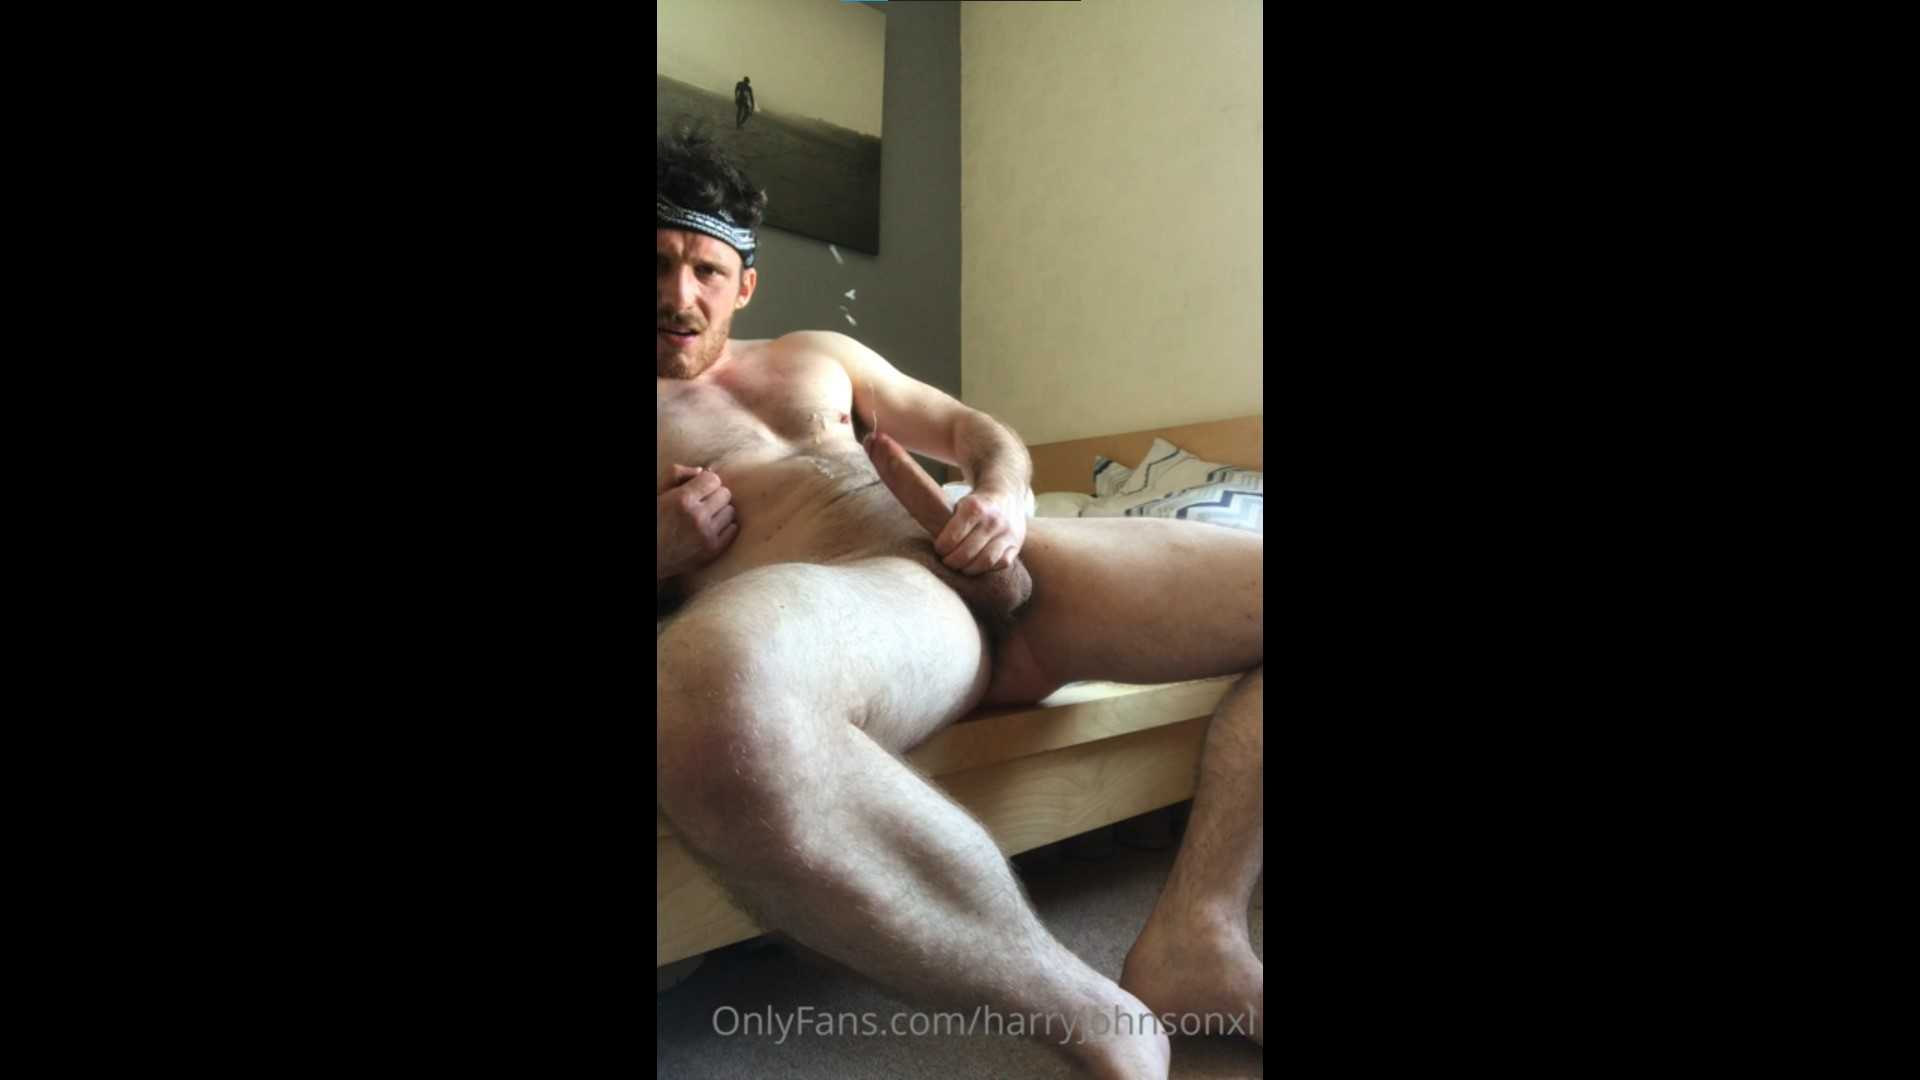 Jerking off with my sex toy and shooting a load over myself - harryjohnsonxl